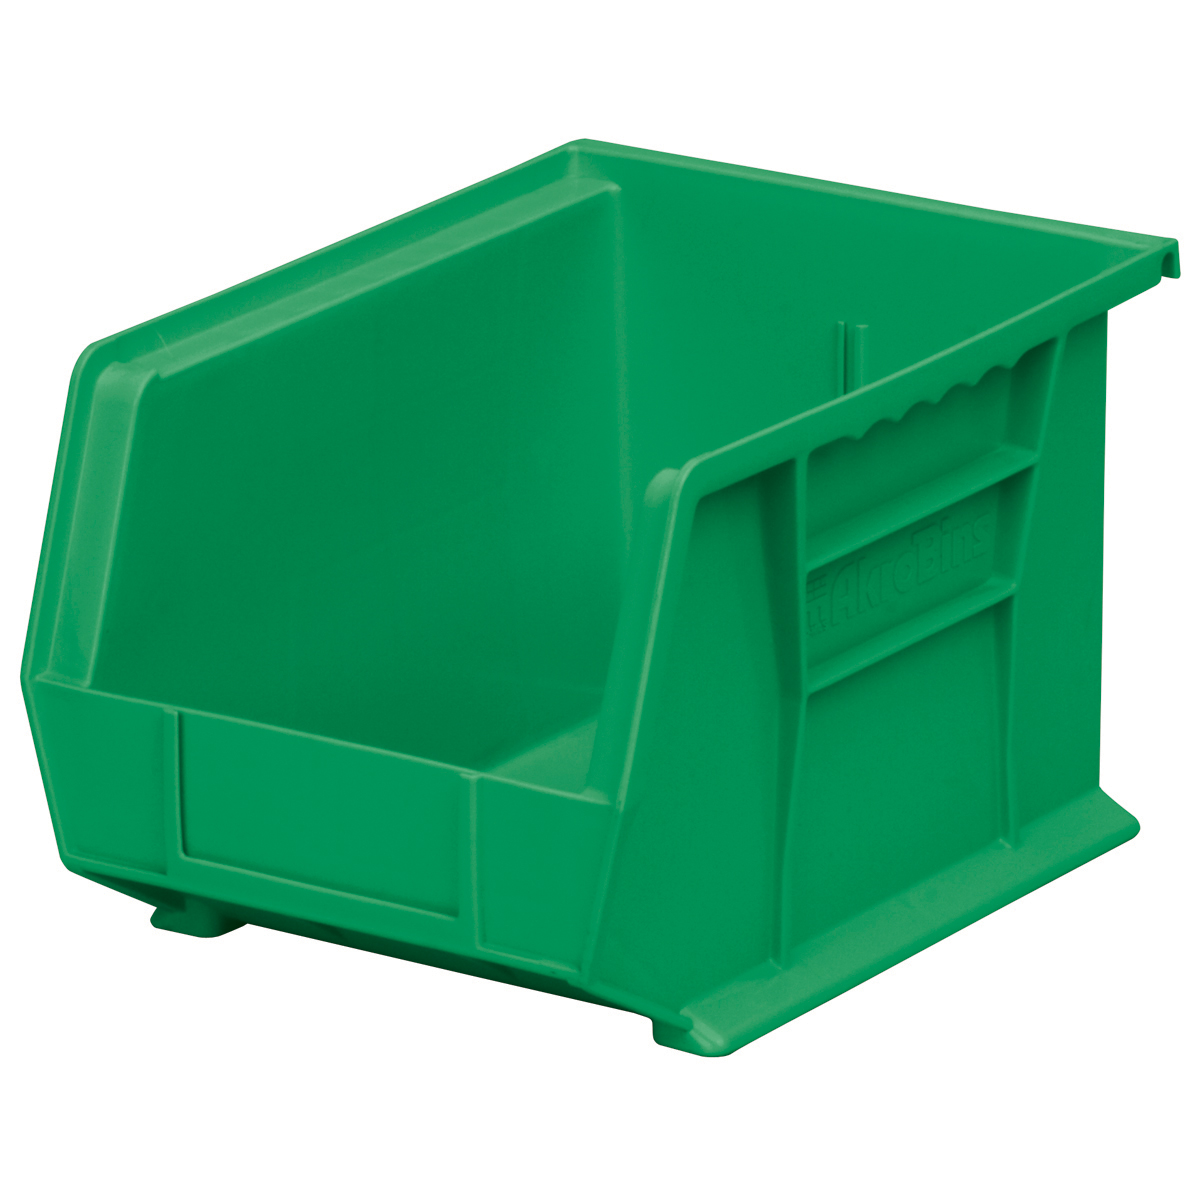 AkroBin 10-3/4 x 8-1/4 x 7, Green (30239GREEN).  This item sold in carton quantities of 6.